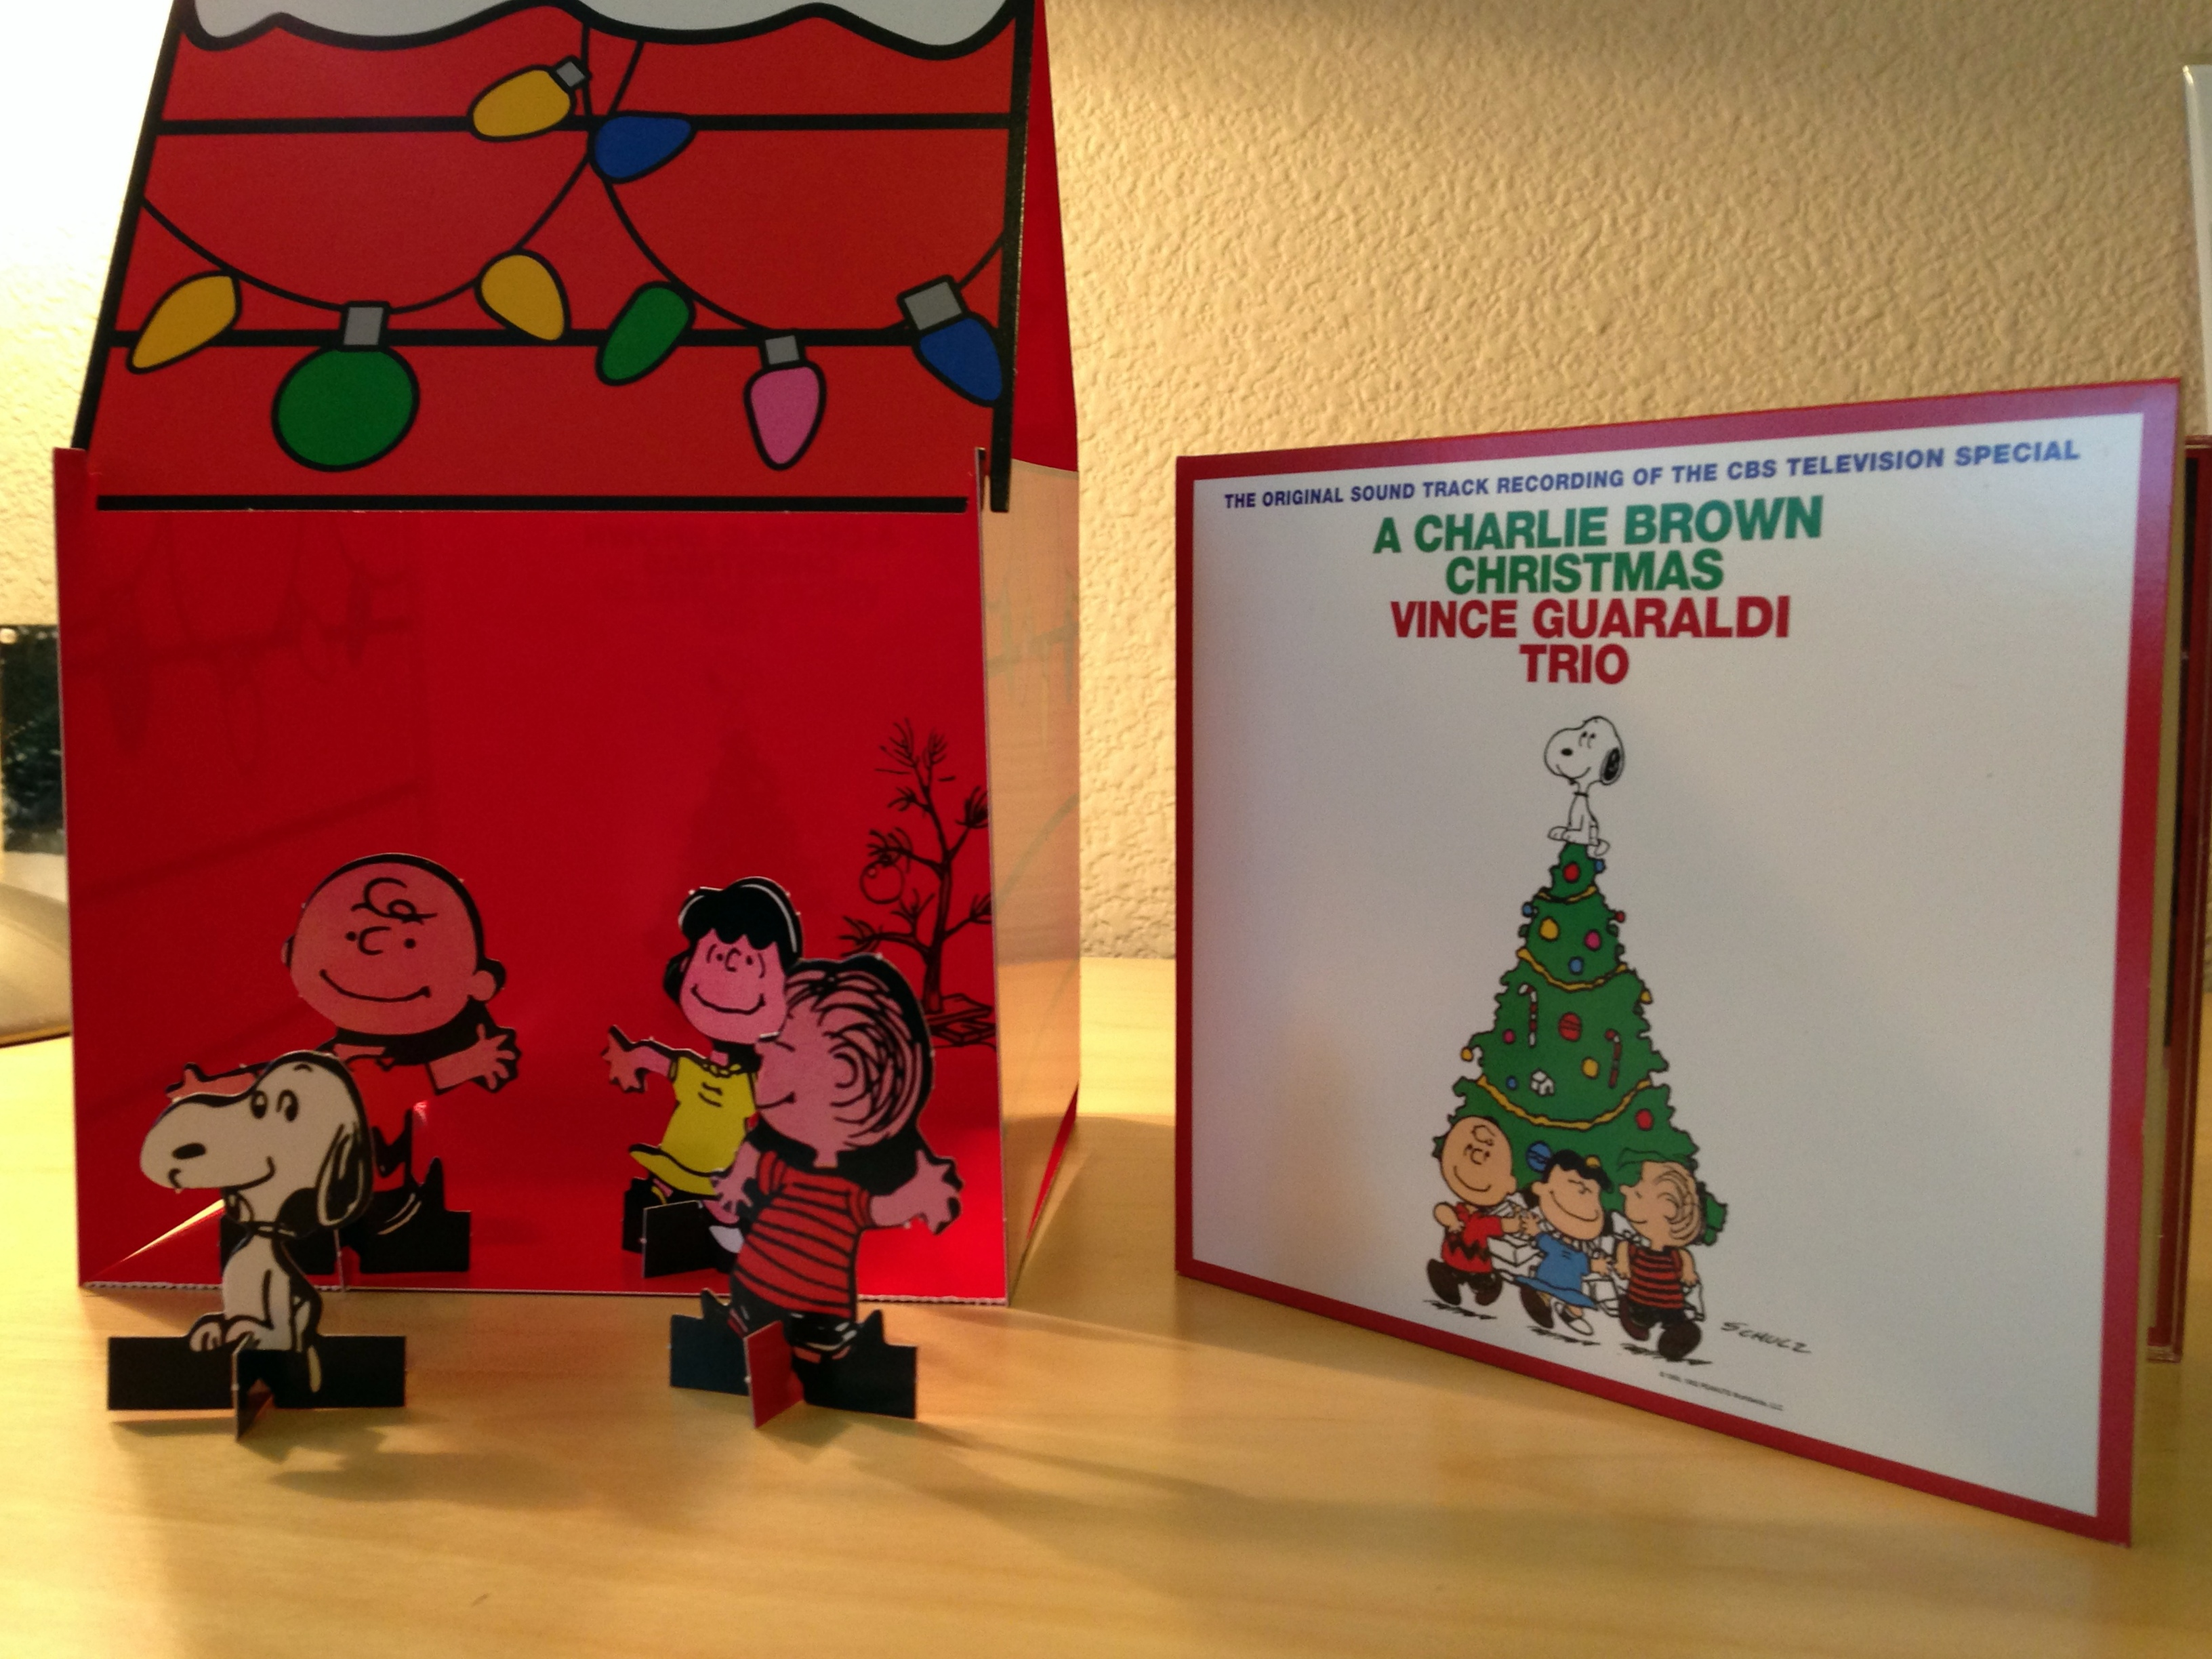 charlie brown christmas soundtrack 02